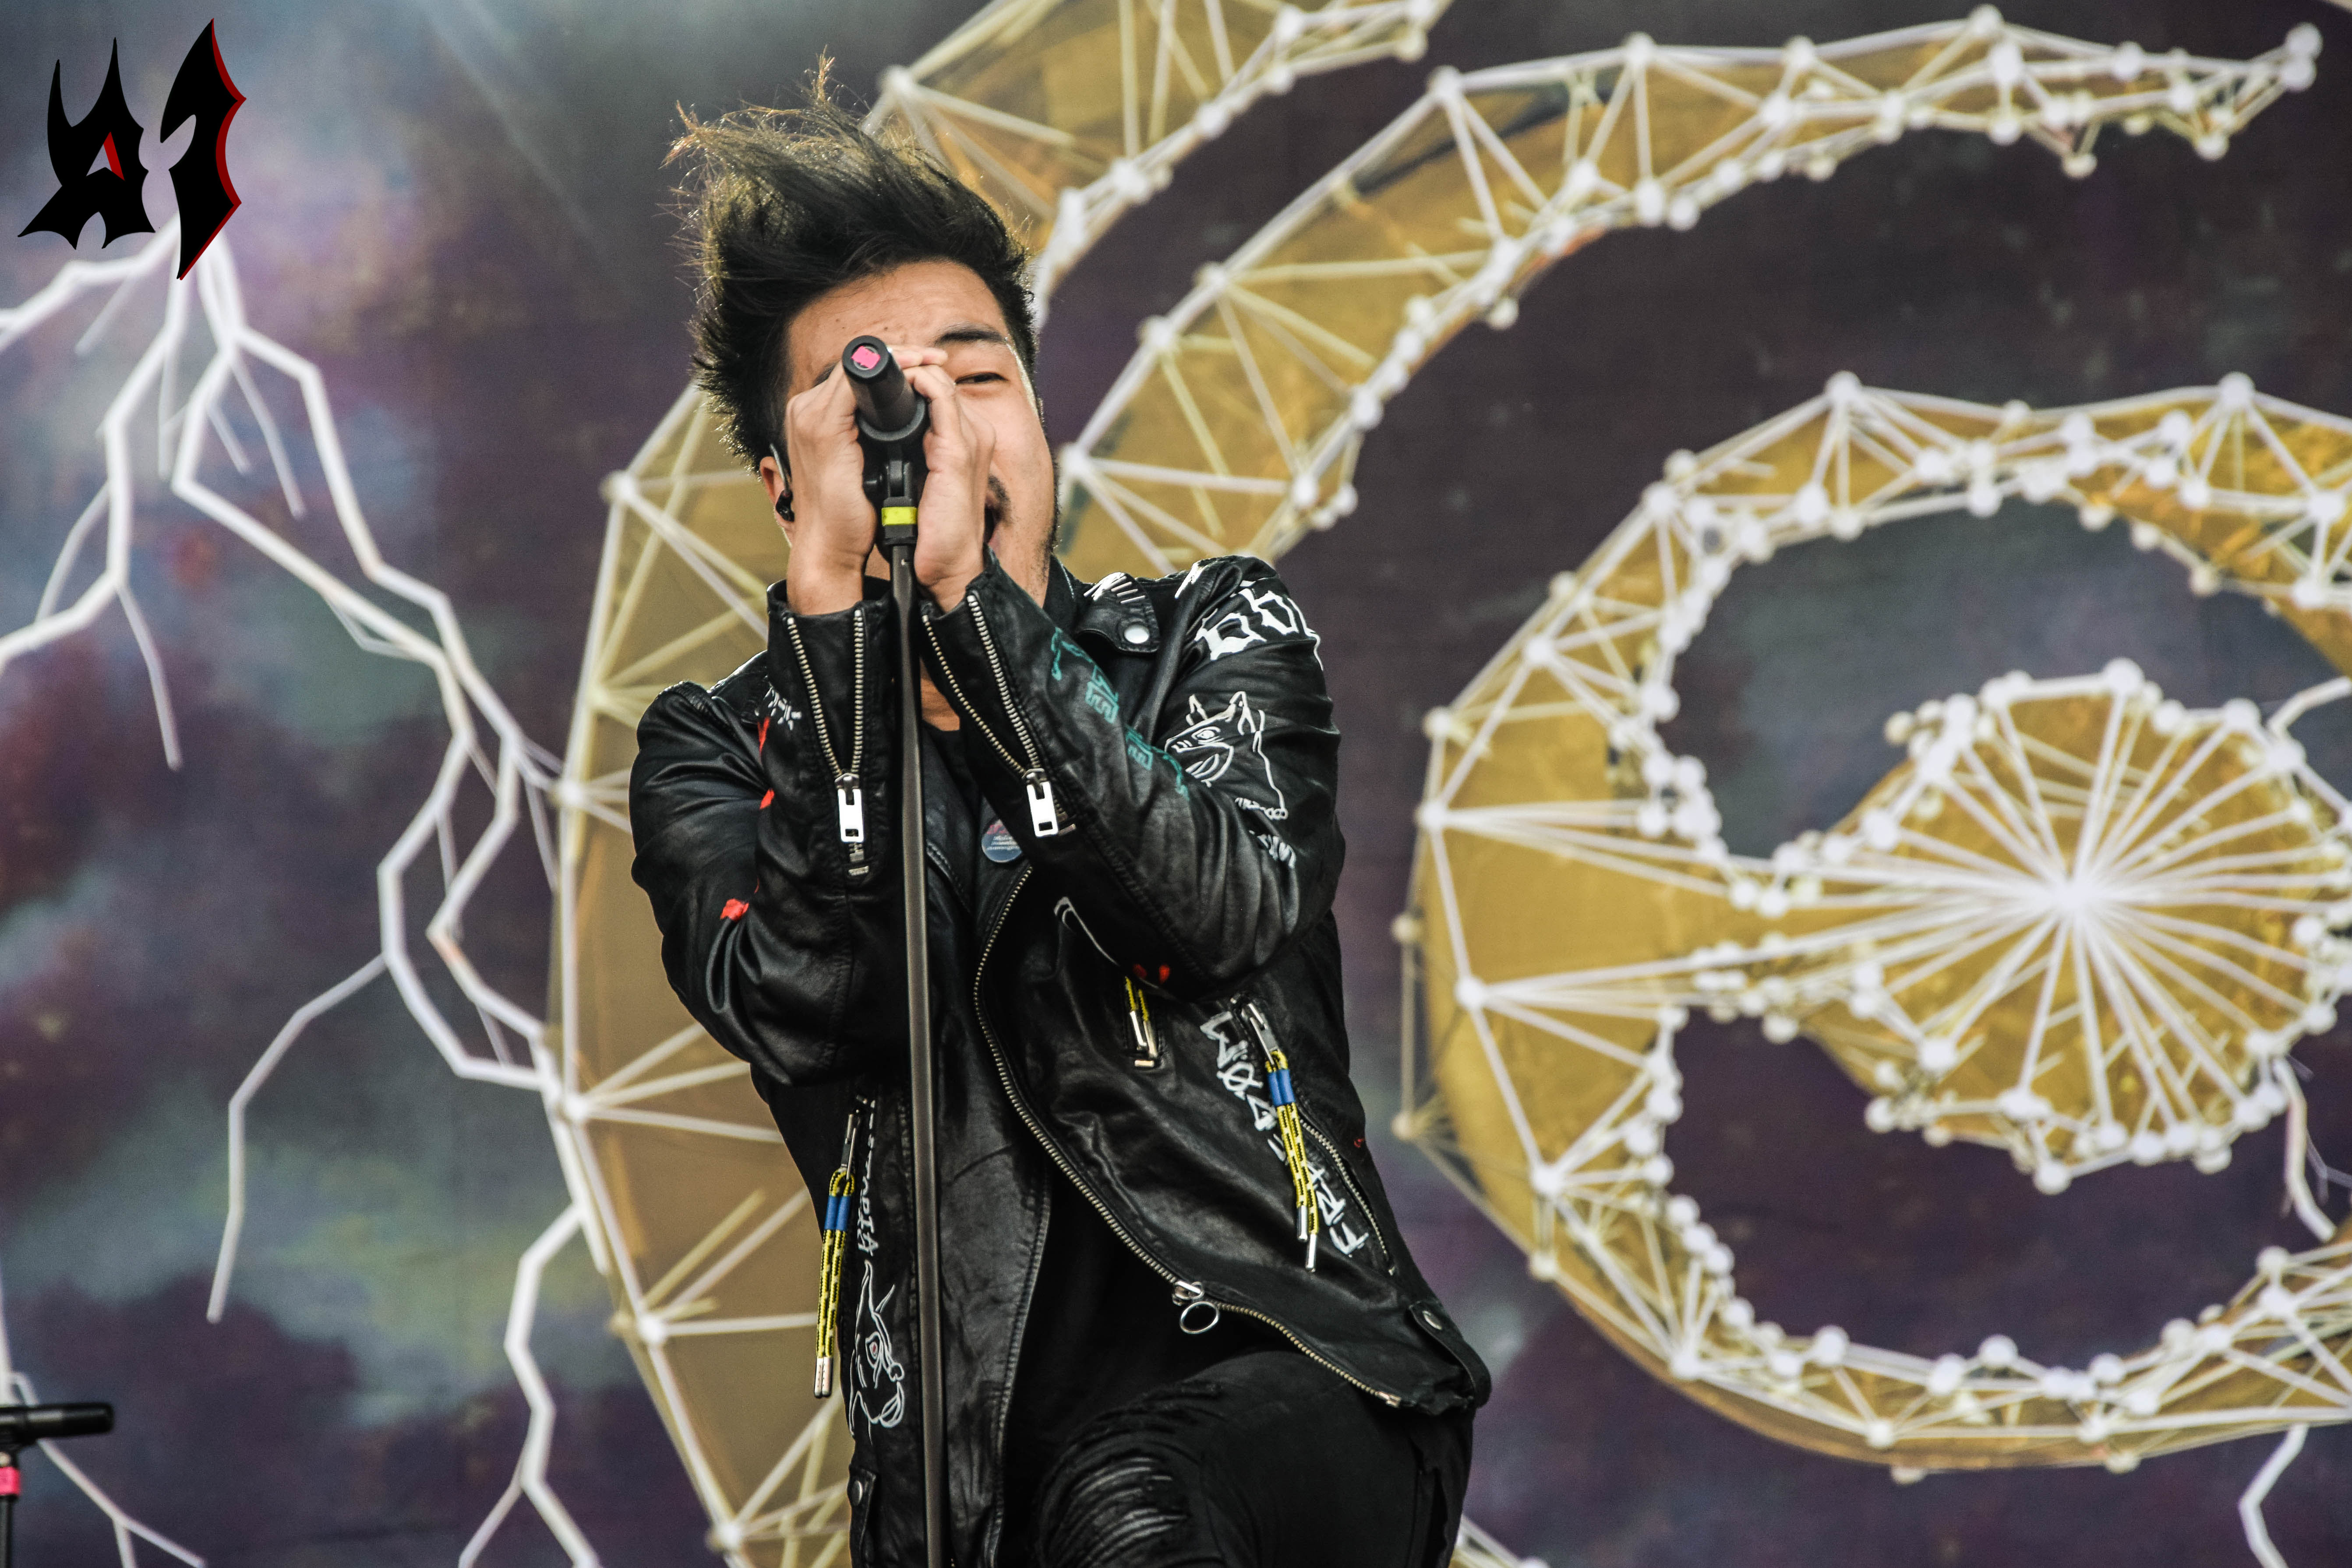 Donwload 2018 – Day 2 - Crossfaith 16